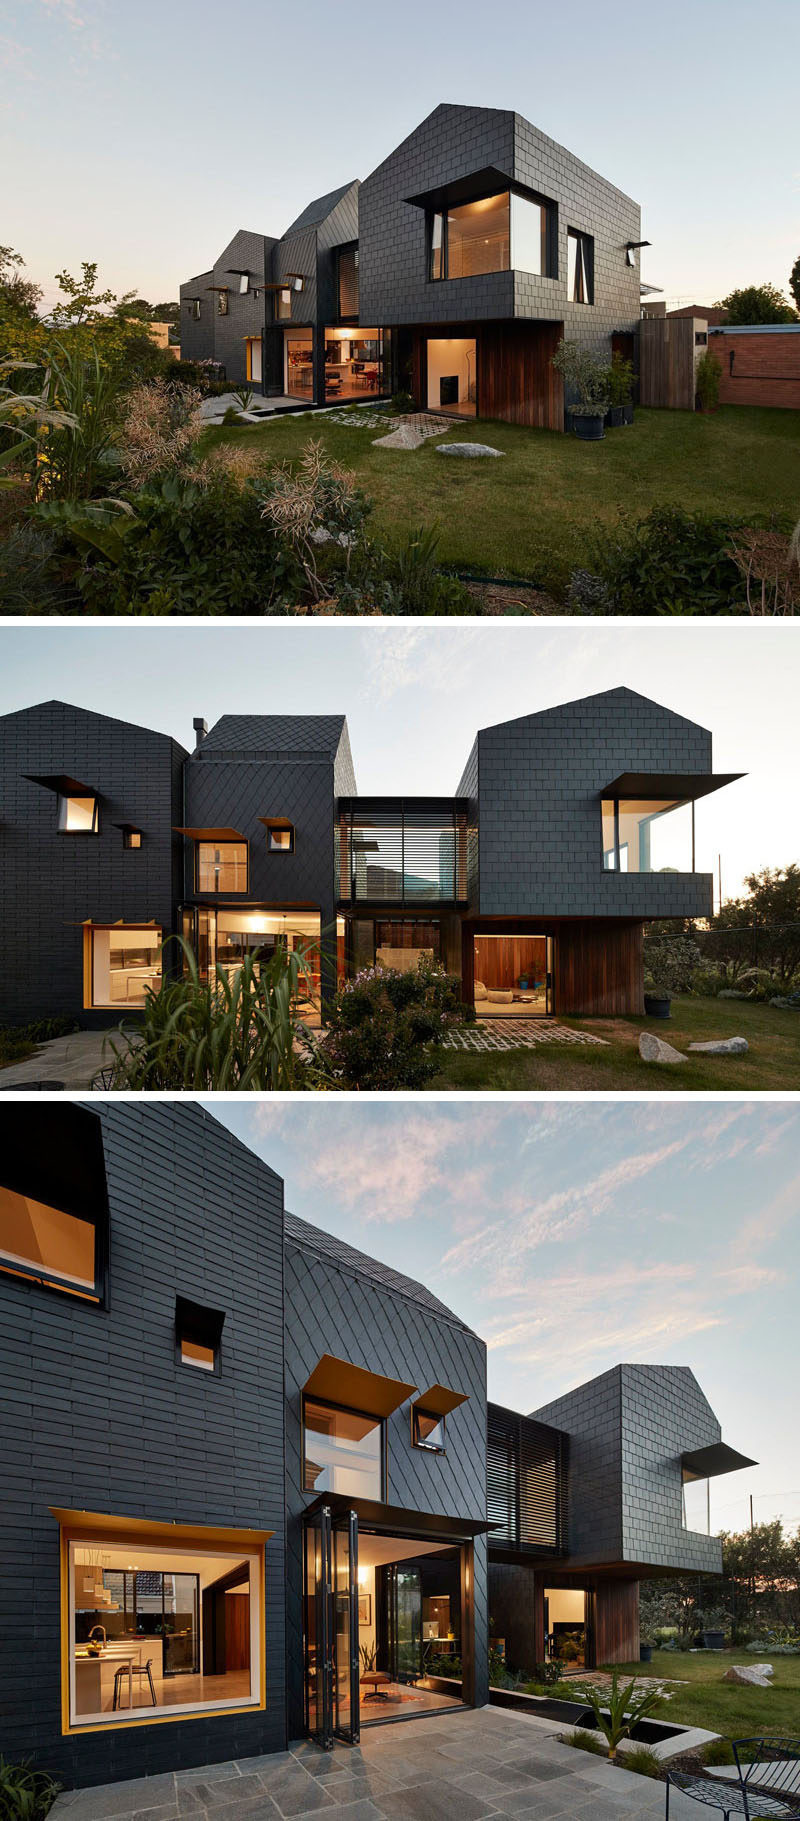 dark grey slate creatively covers this australian home | contemporist